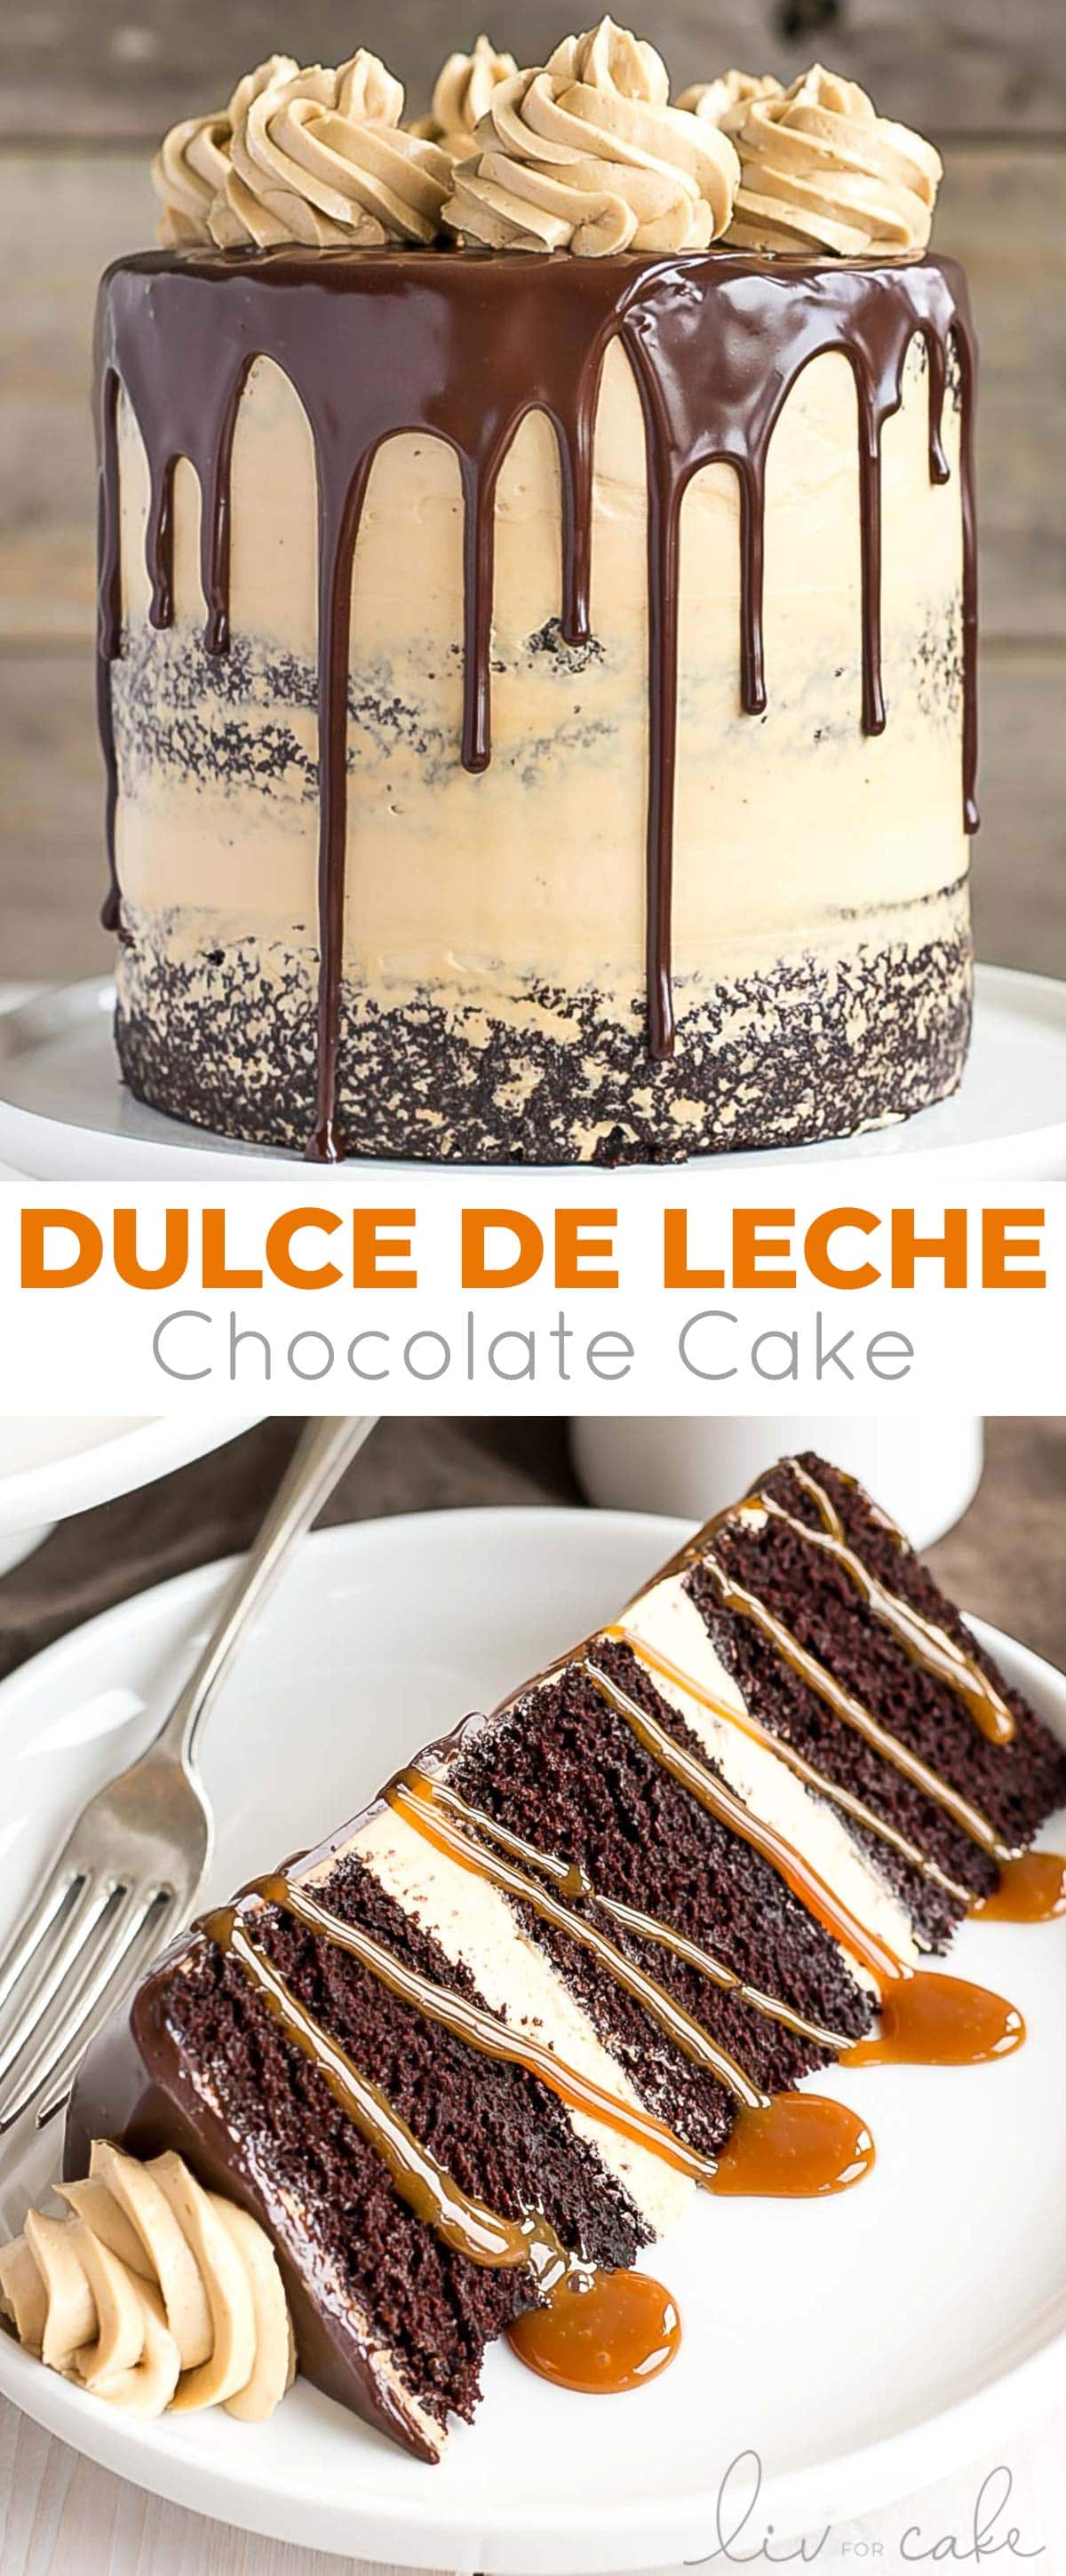 Chocolate Dulce de Leche Cake collage